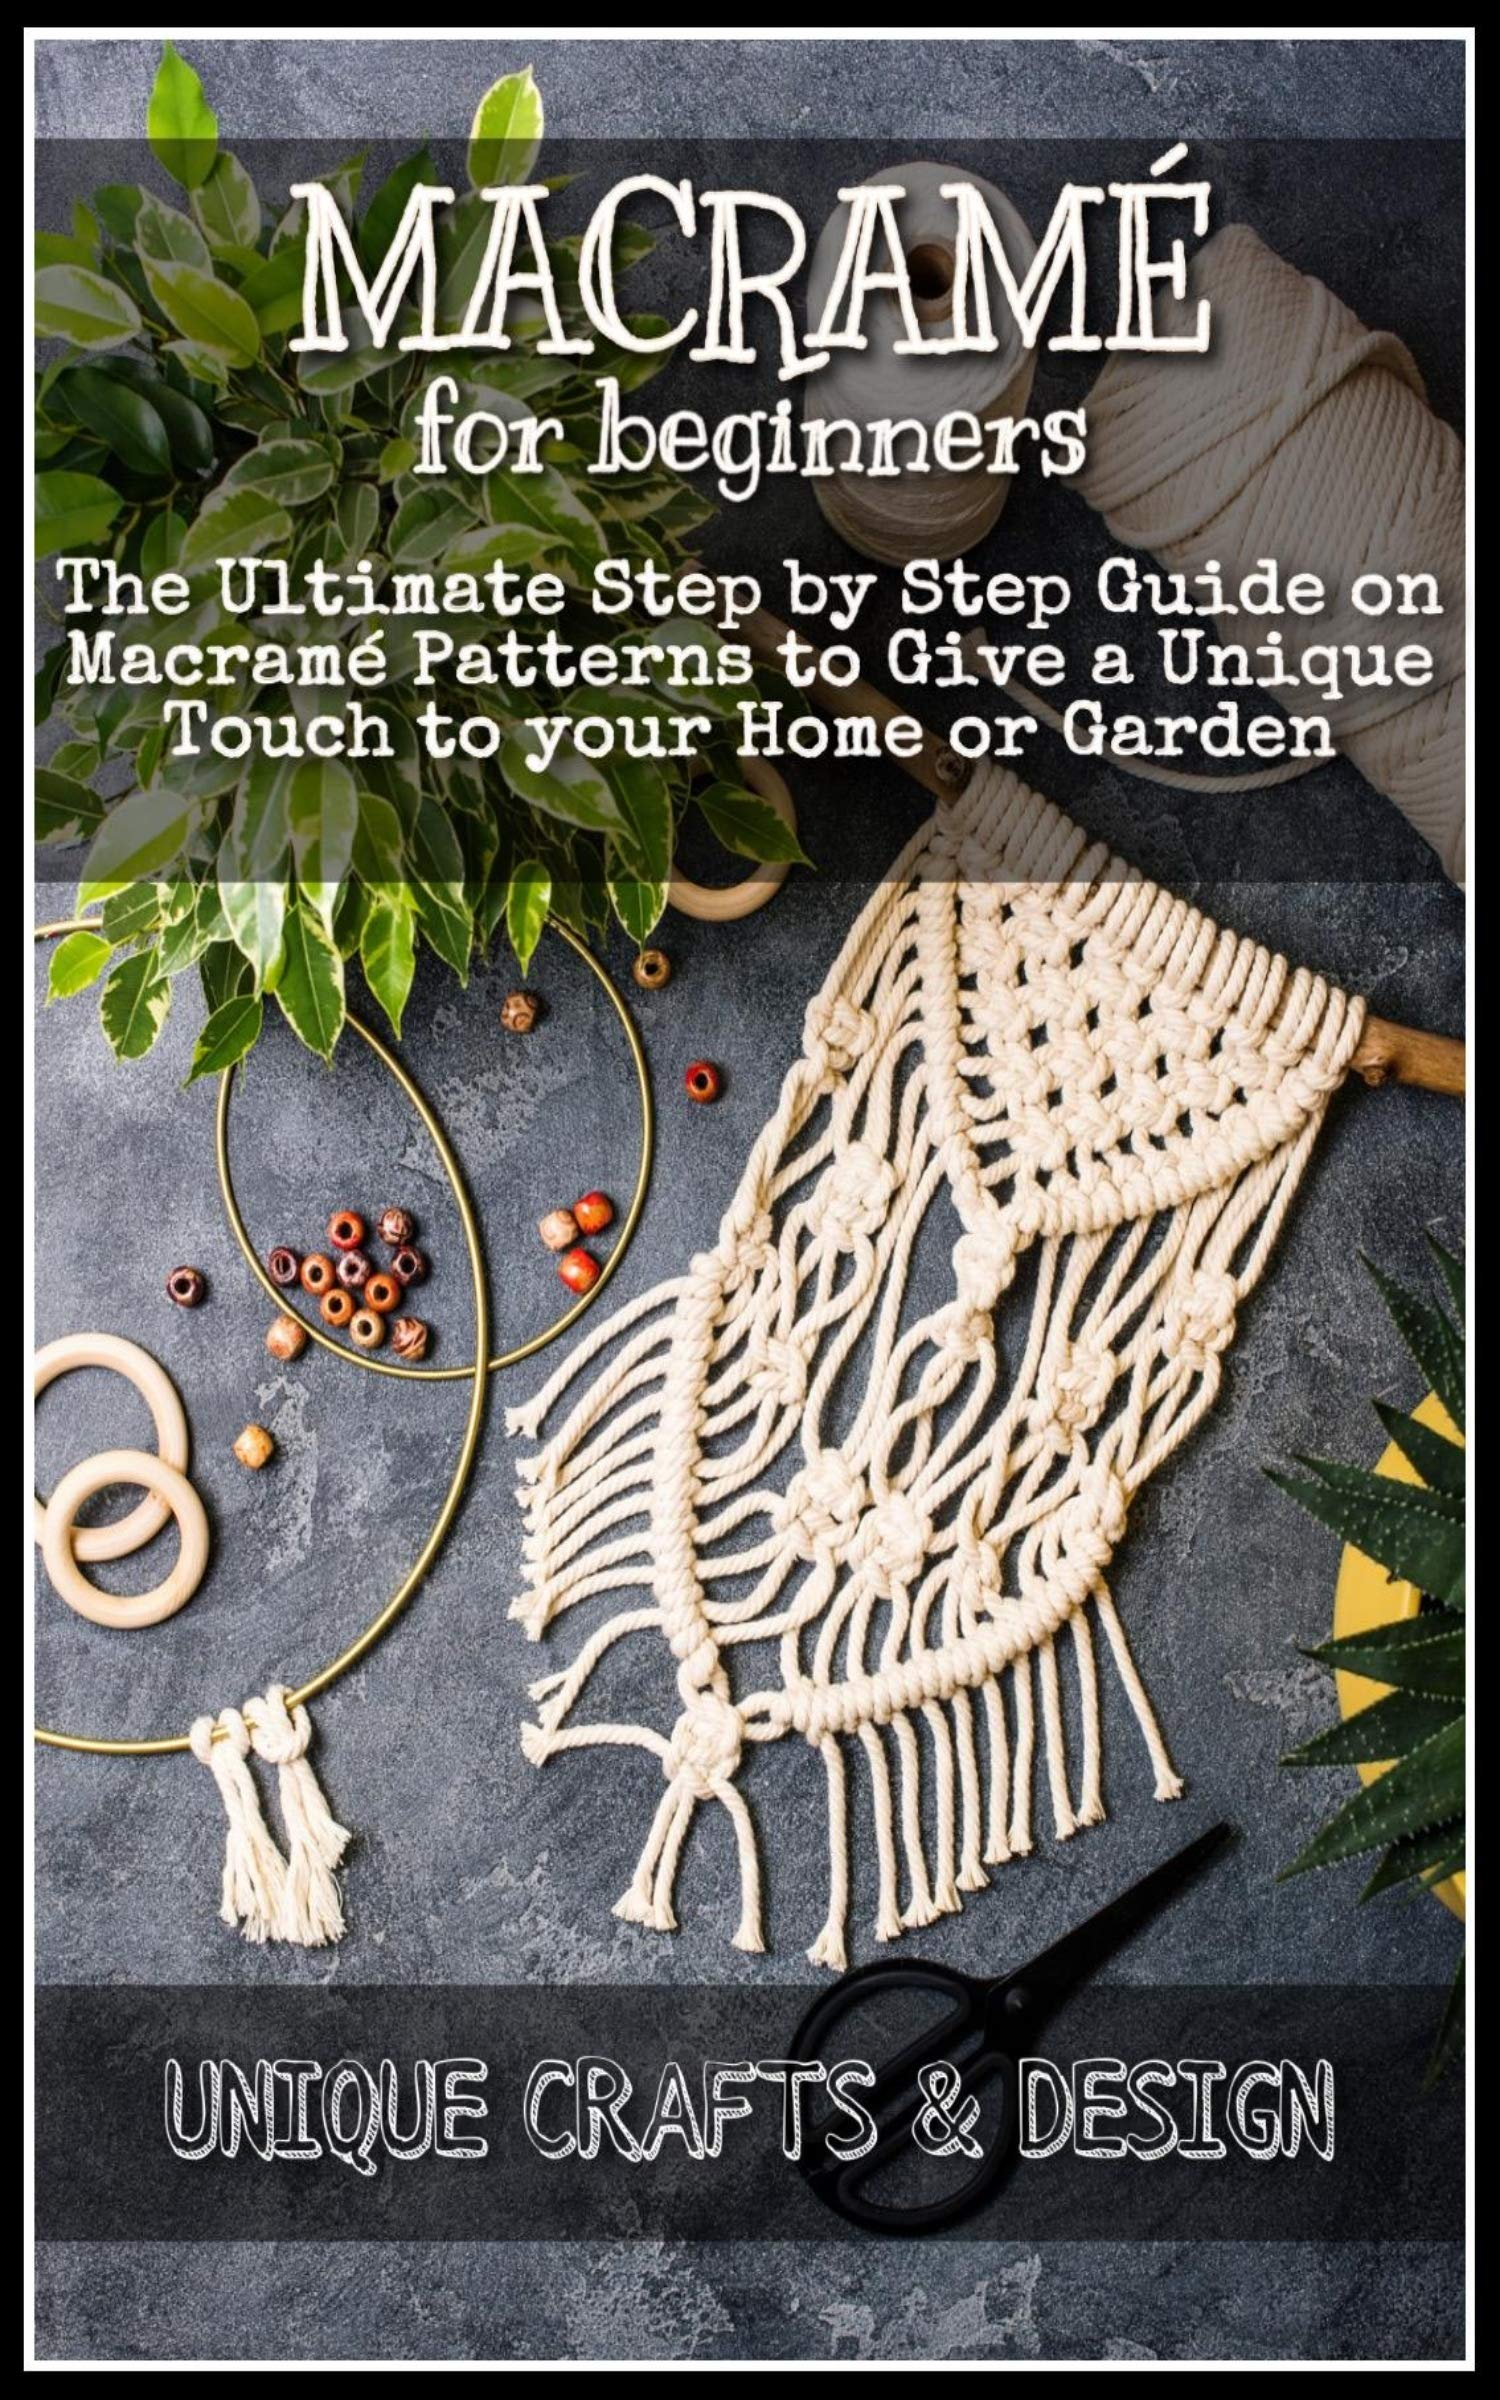 Macramé for Beginners: The Ultimate Step by Step Guide on Macramé Patterns to Give a Unique Touch to your Home or Garden